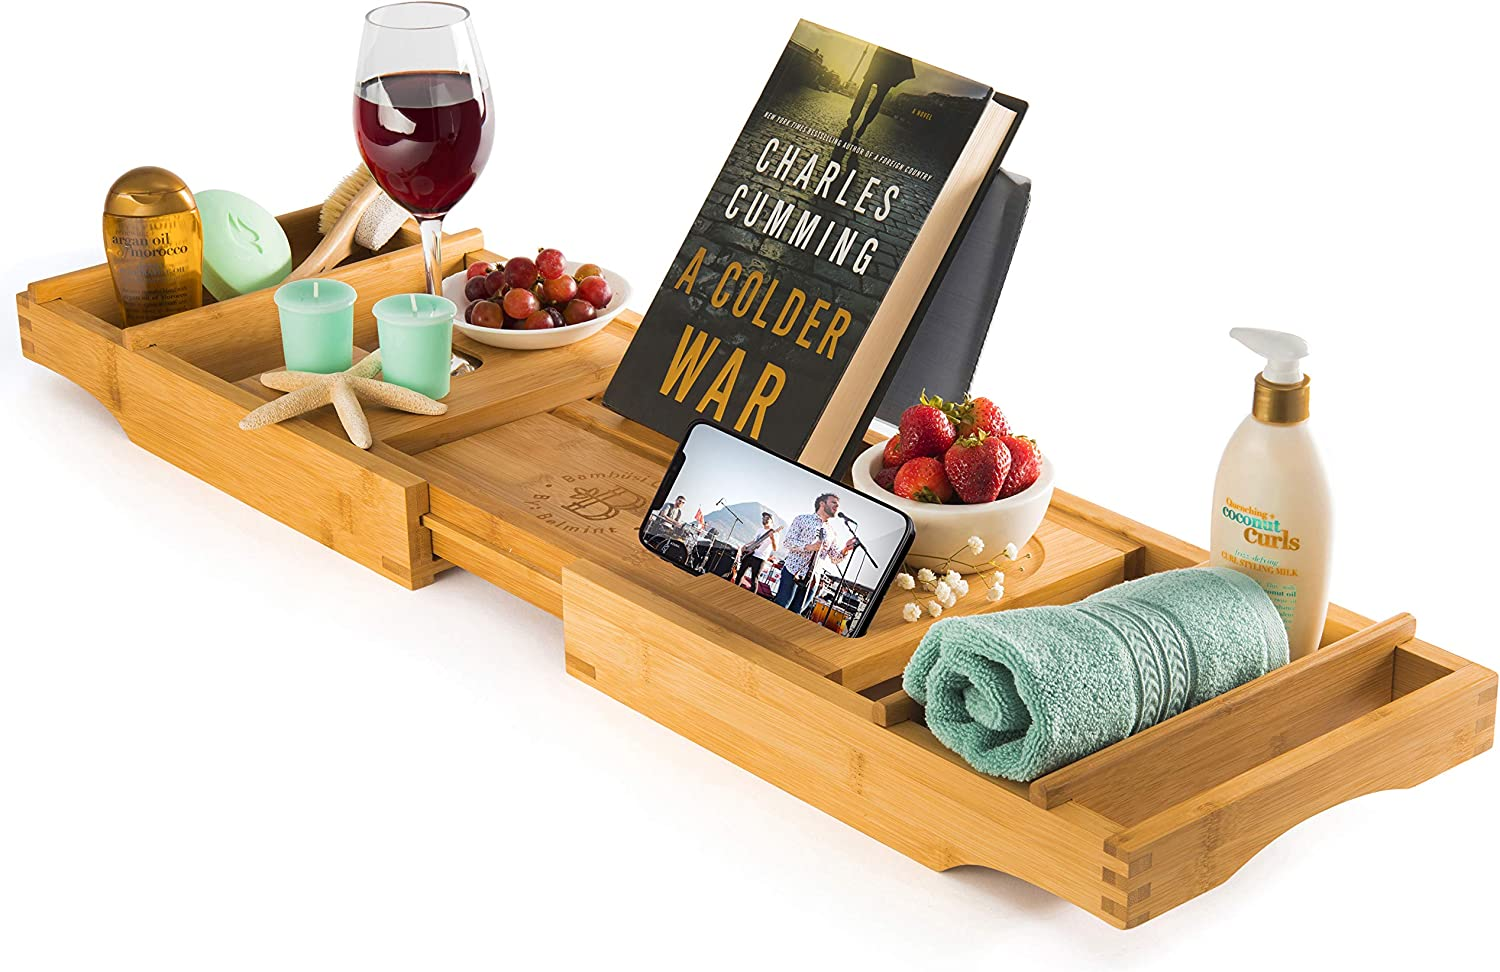 Amazon Com Luxury Bamboo Bathtub Tray Caddy Expandable And Nonslip Bath Caddy With Book Tablet And Wine Glass Holder Great Gift Idea For Loved Ones Kitchen Dining